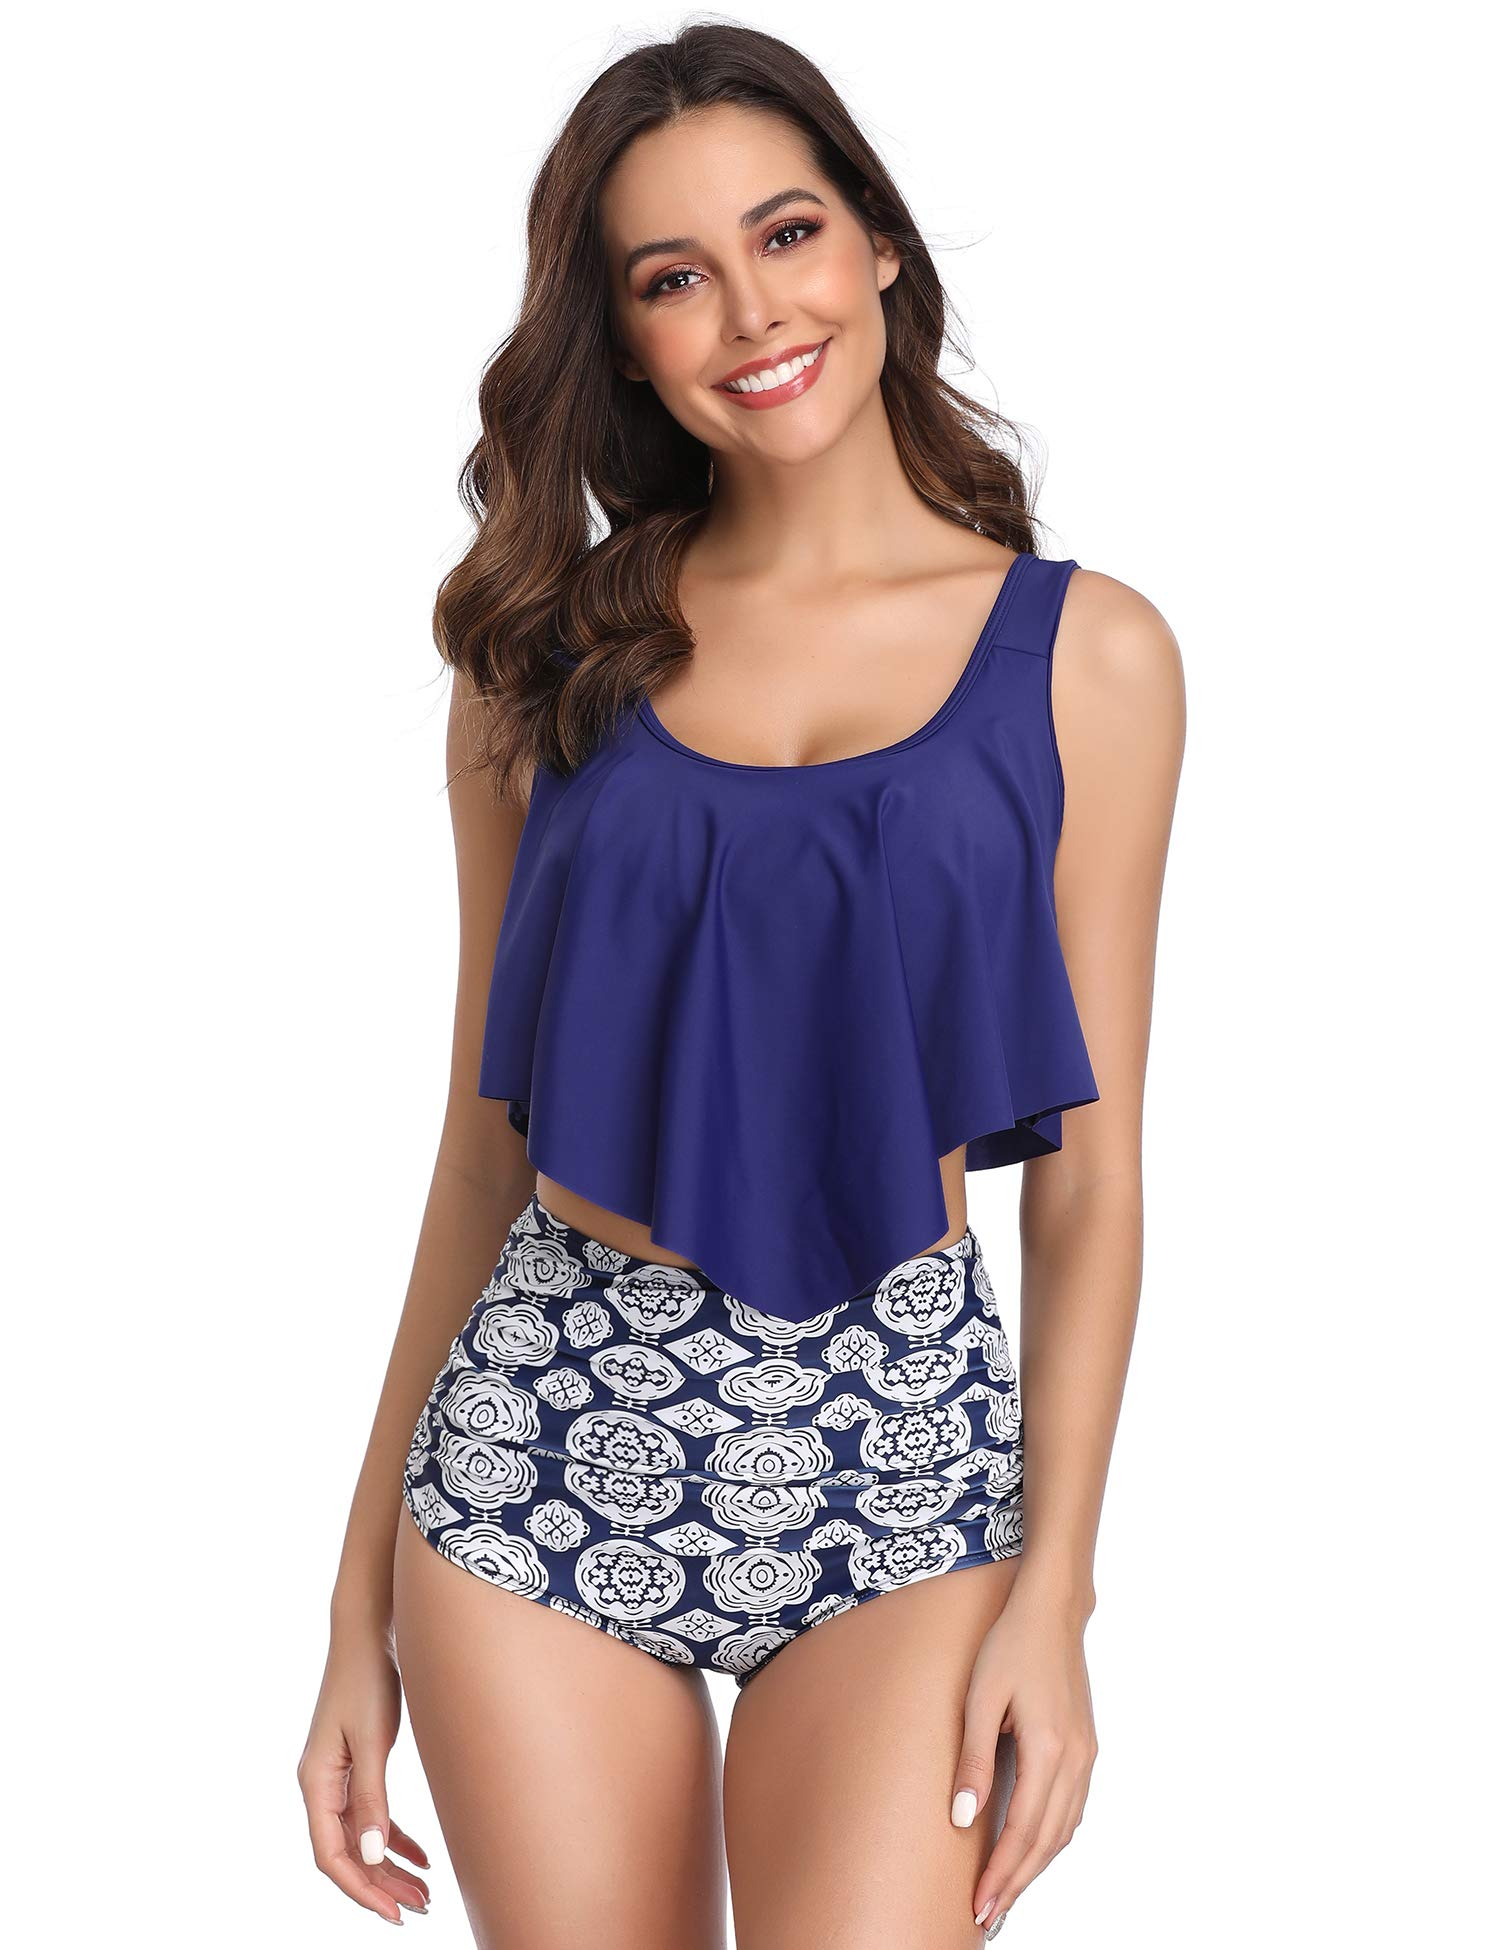 74c18331439 Galleon - MarinaVida Switmsuit For Women Two Pieces Bathing Suits Top  Ruffled Racerback With High Waisted Bottom Tankini Set Blue